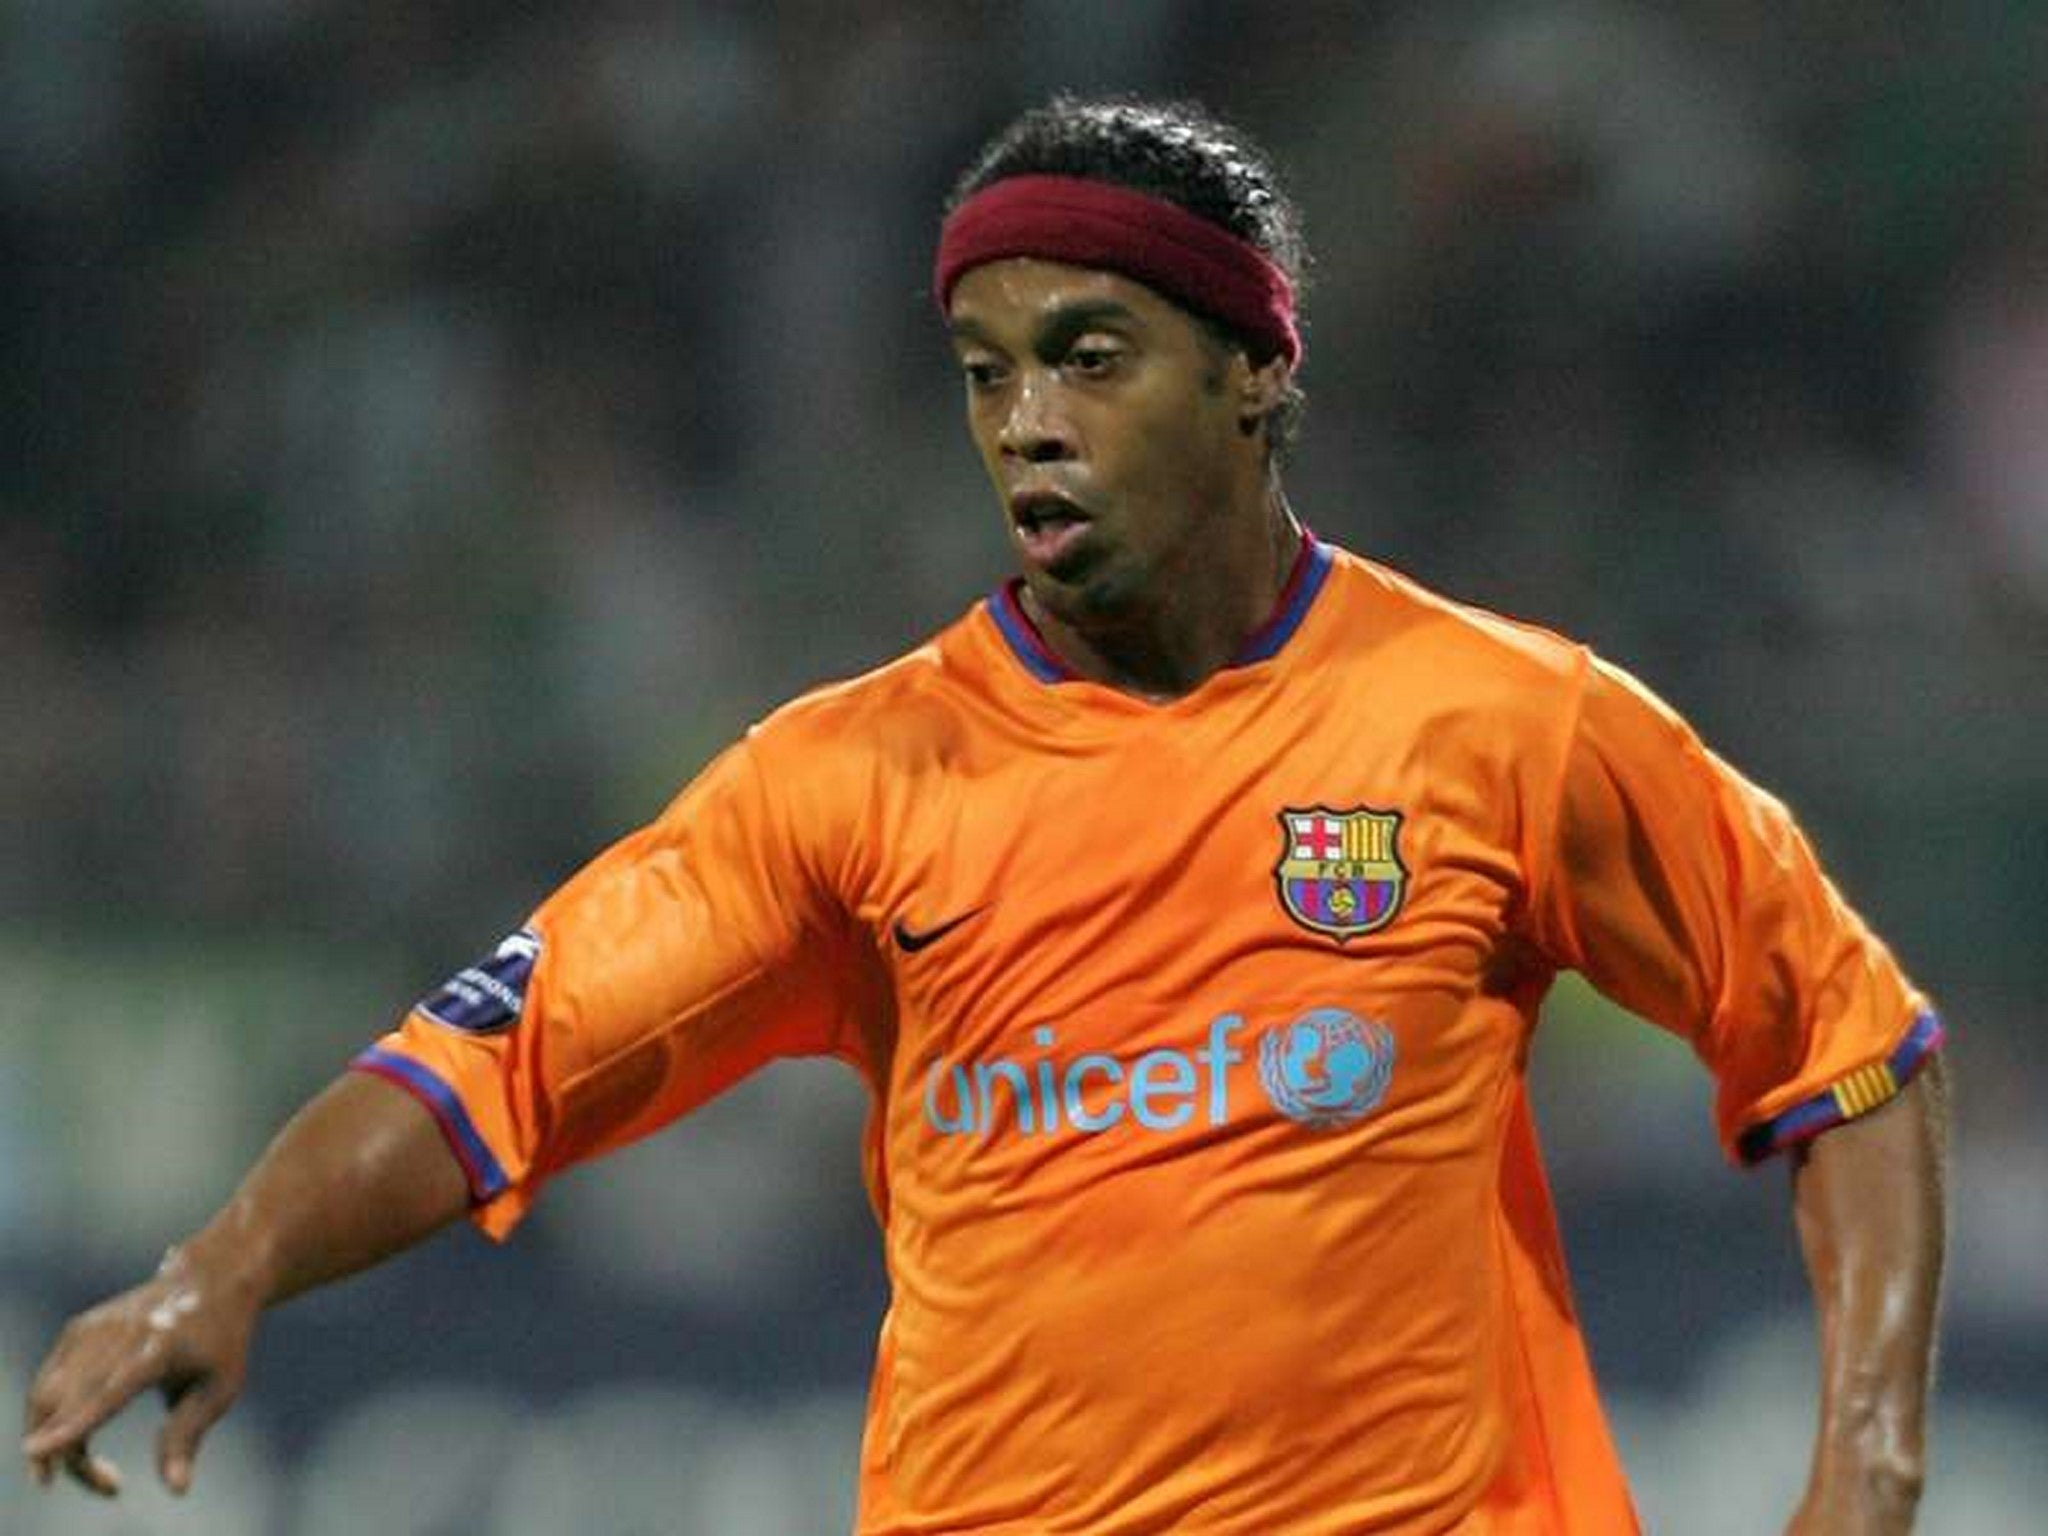 FC Barcelona 2006 - 2008 Away Football Shirt #10 Ronaldinho